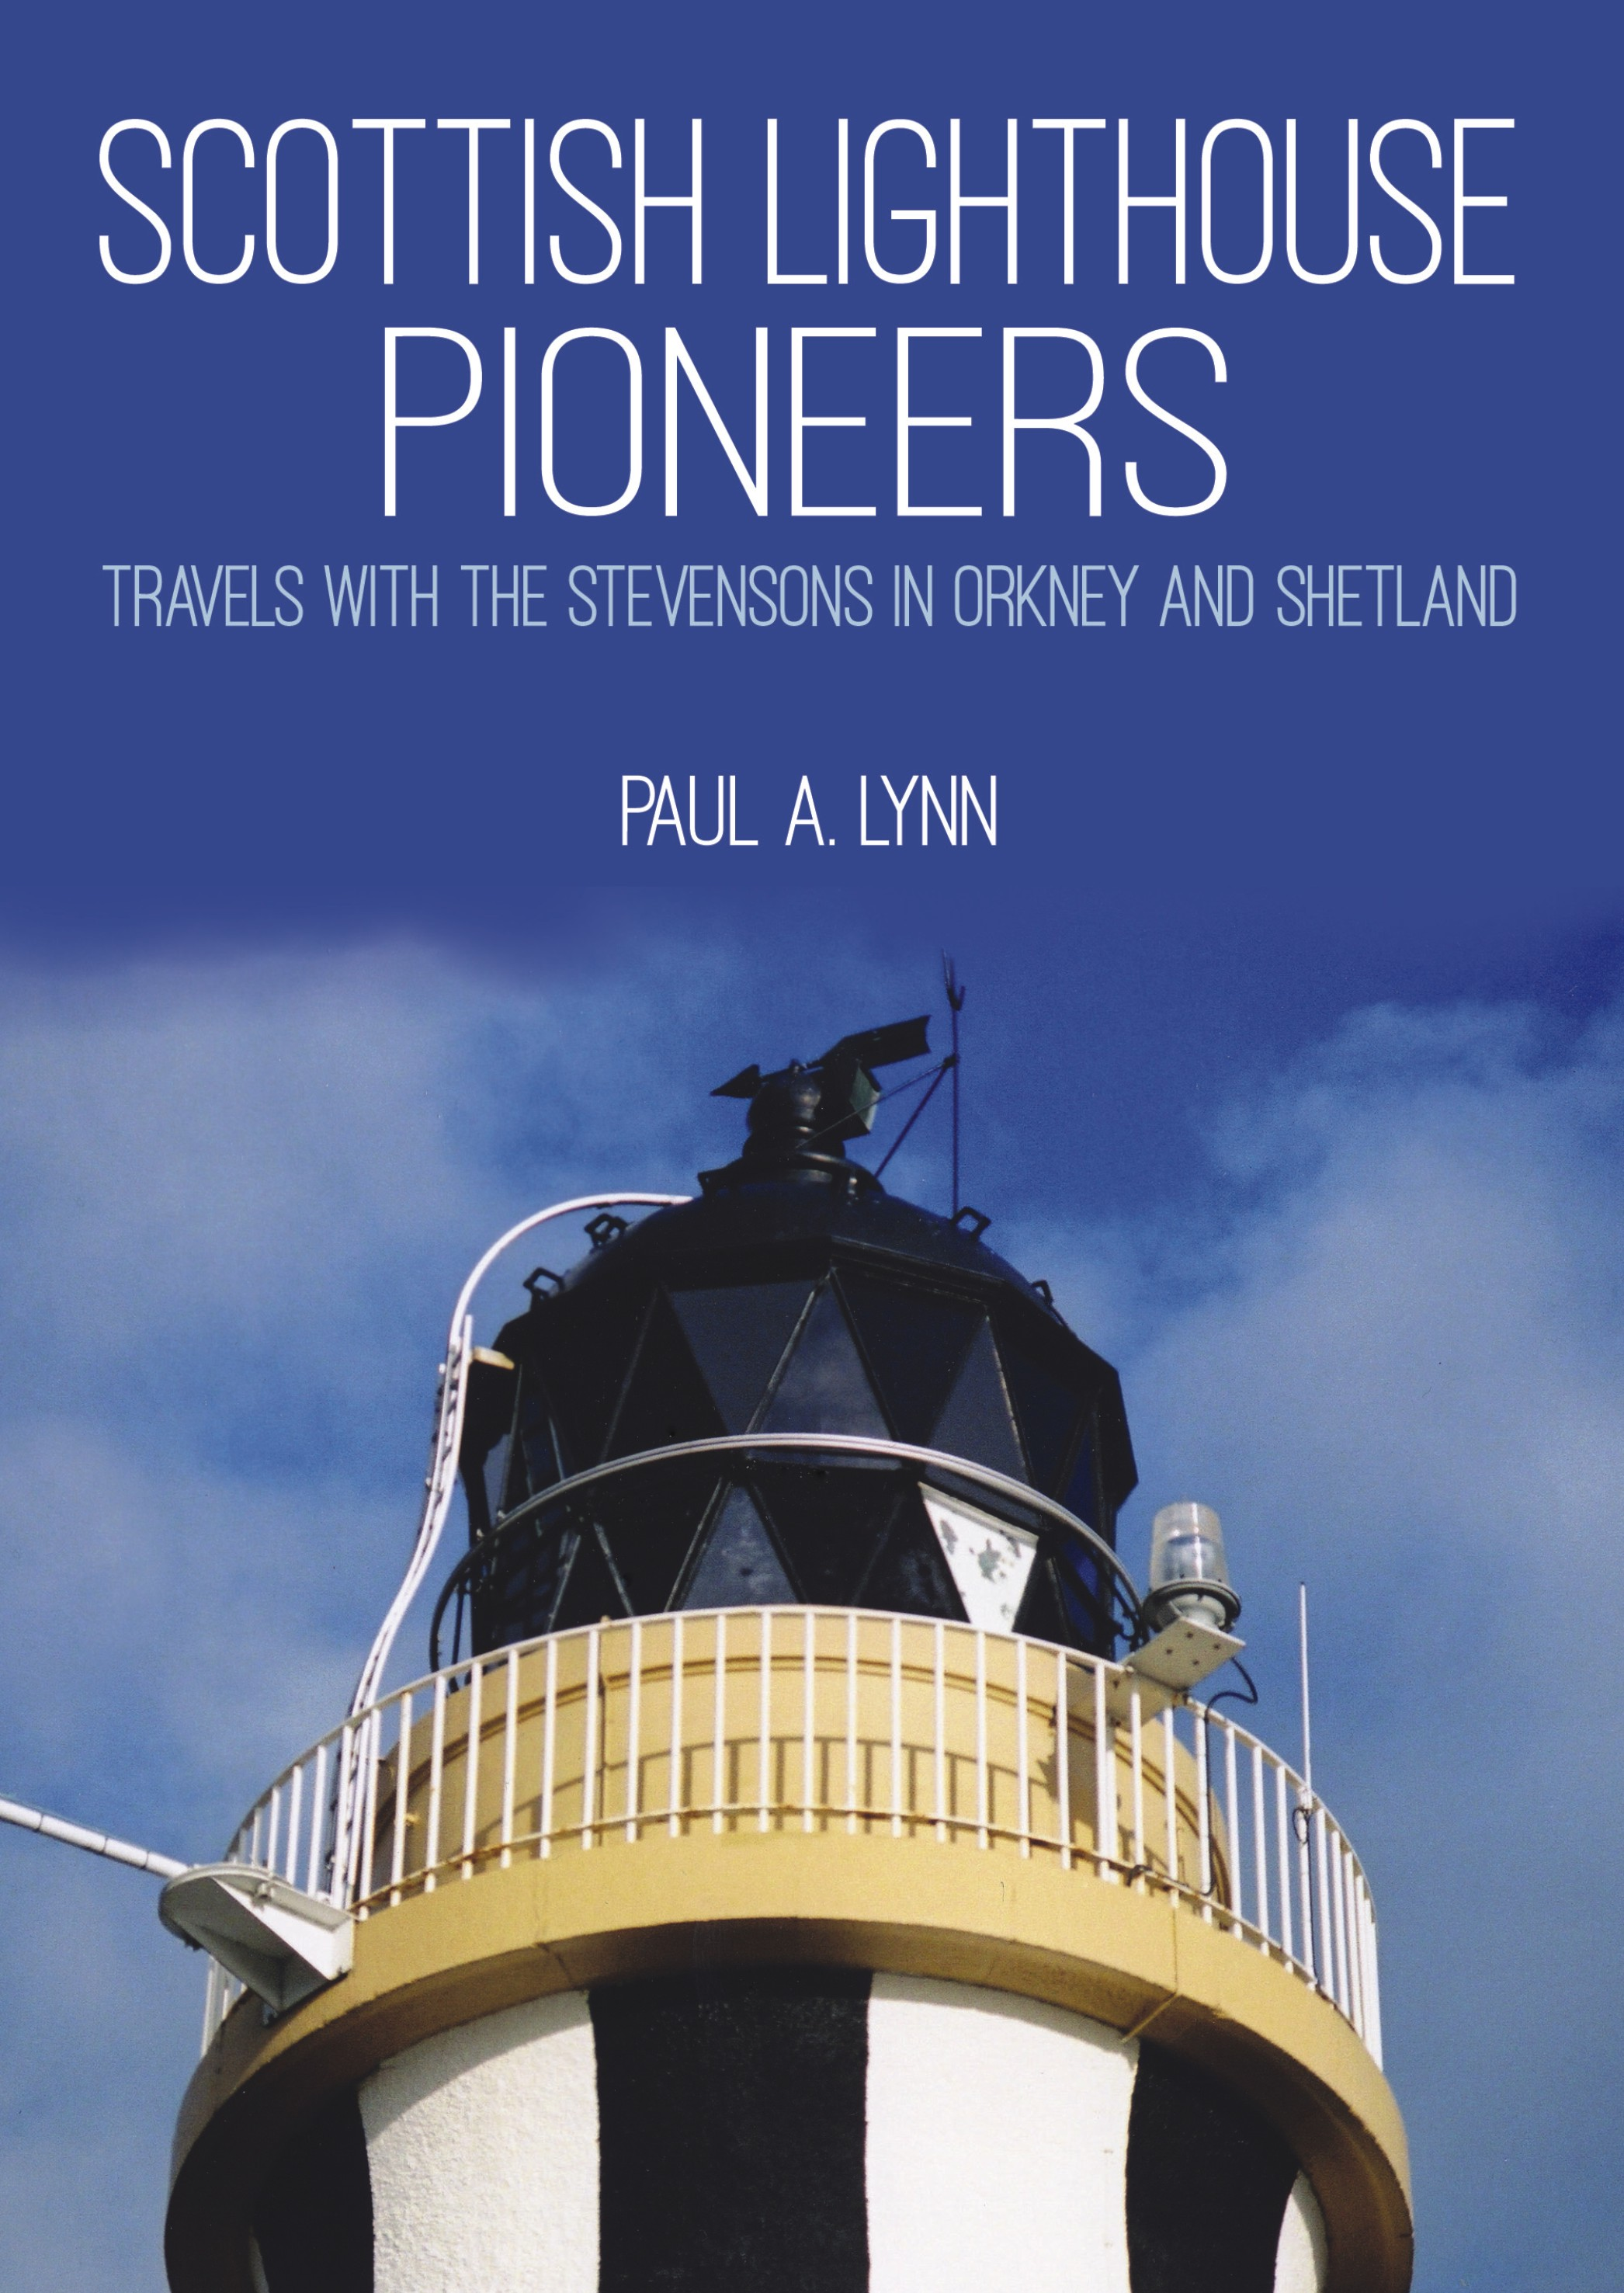 Lighthouse Pioneers: The Stevensons in Orkney and Shetland